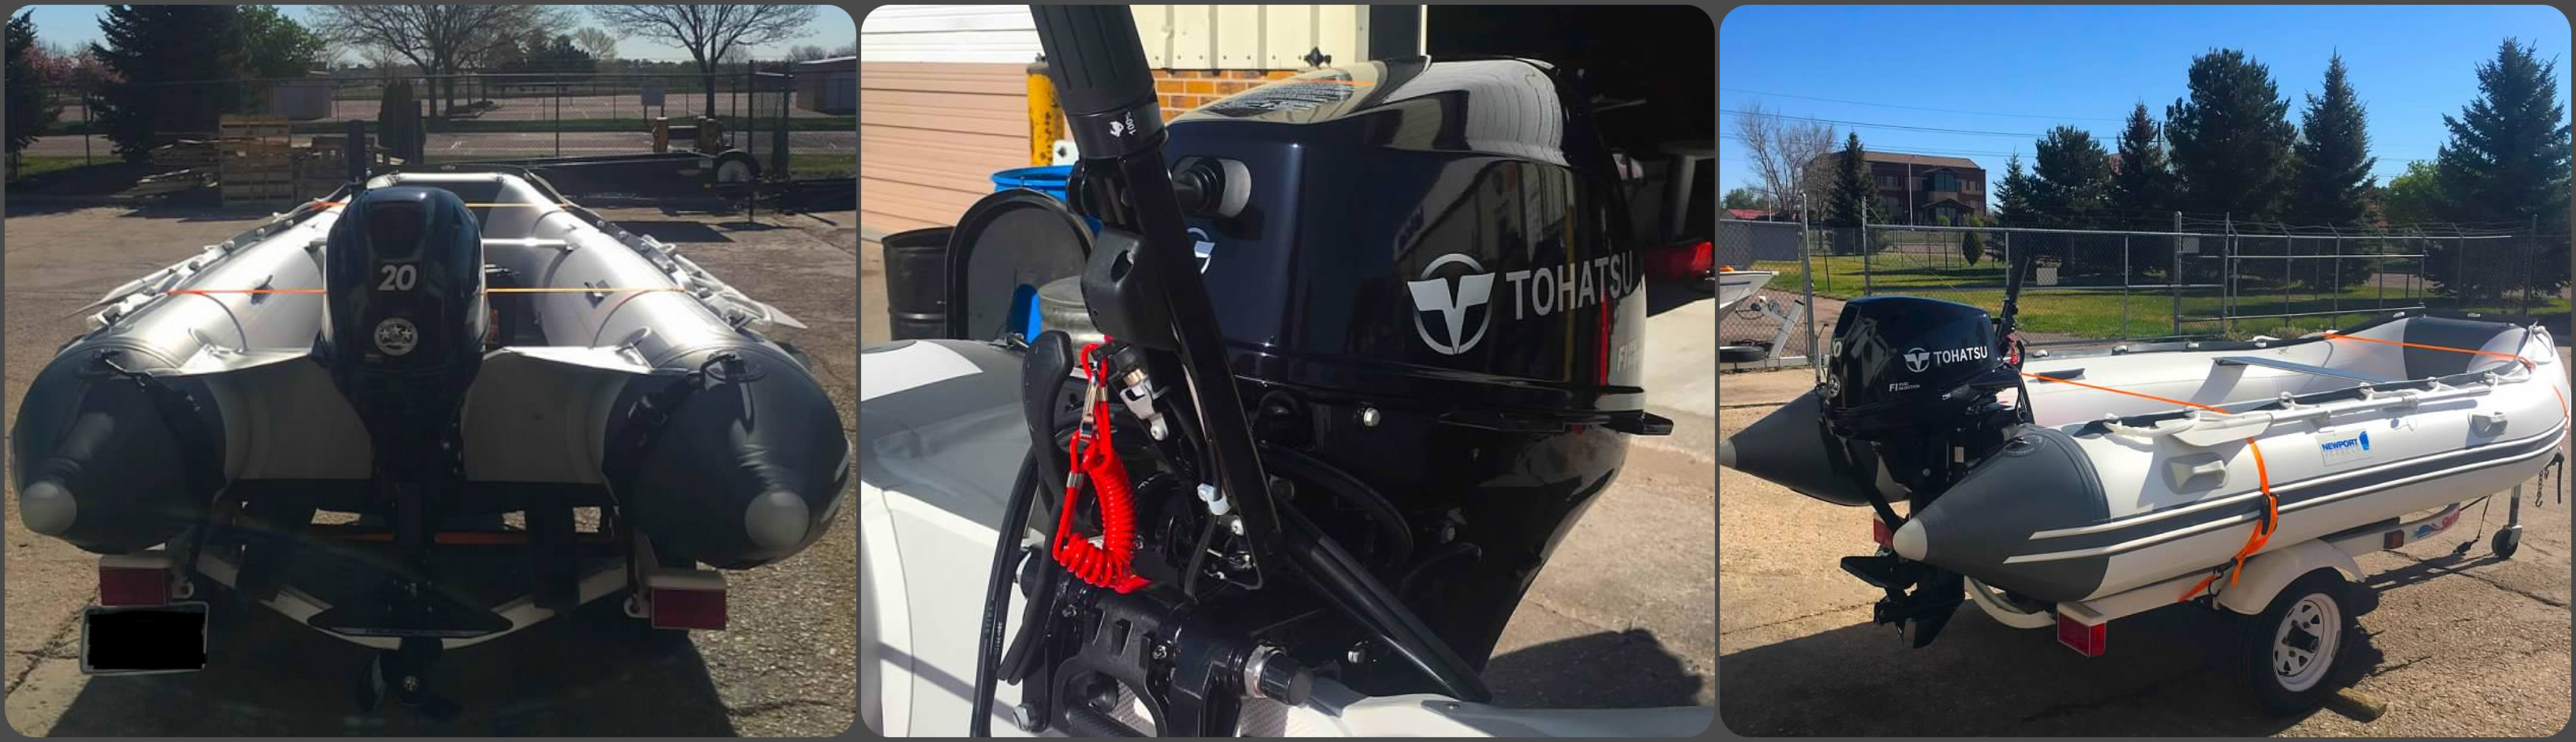 20hp Tohatsu installed on Dingy